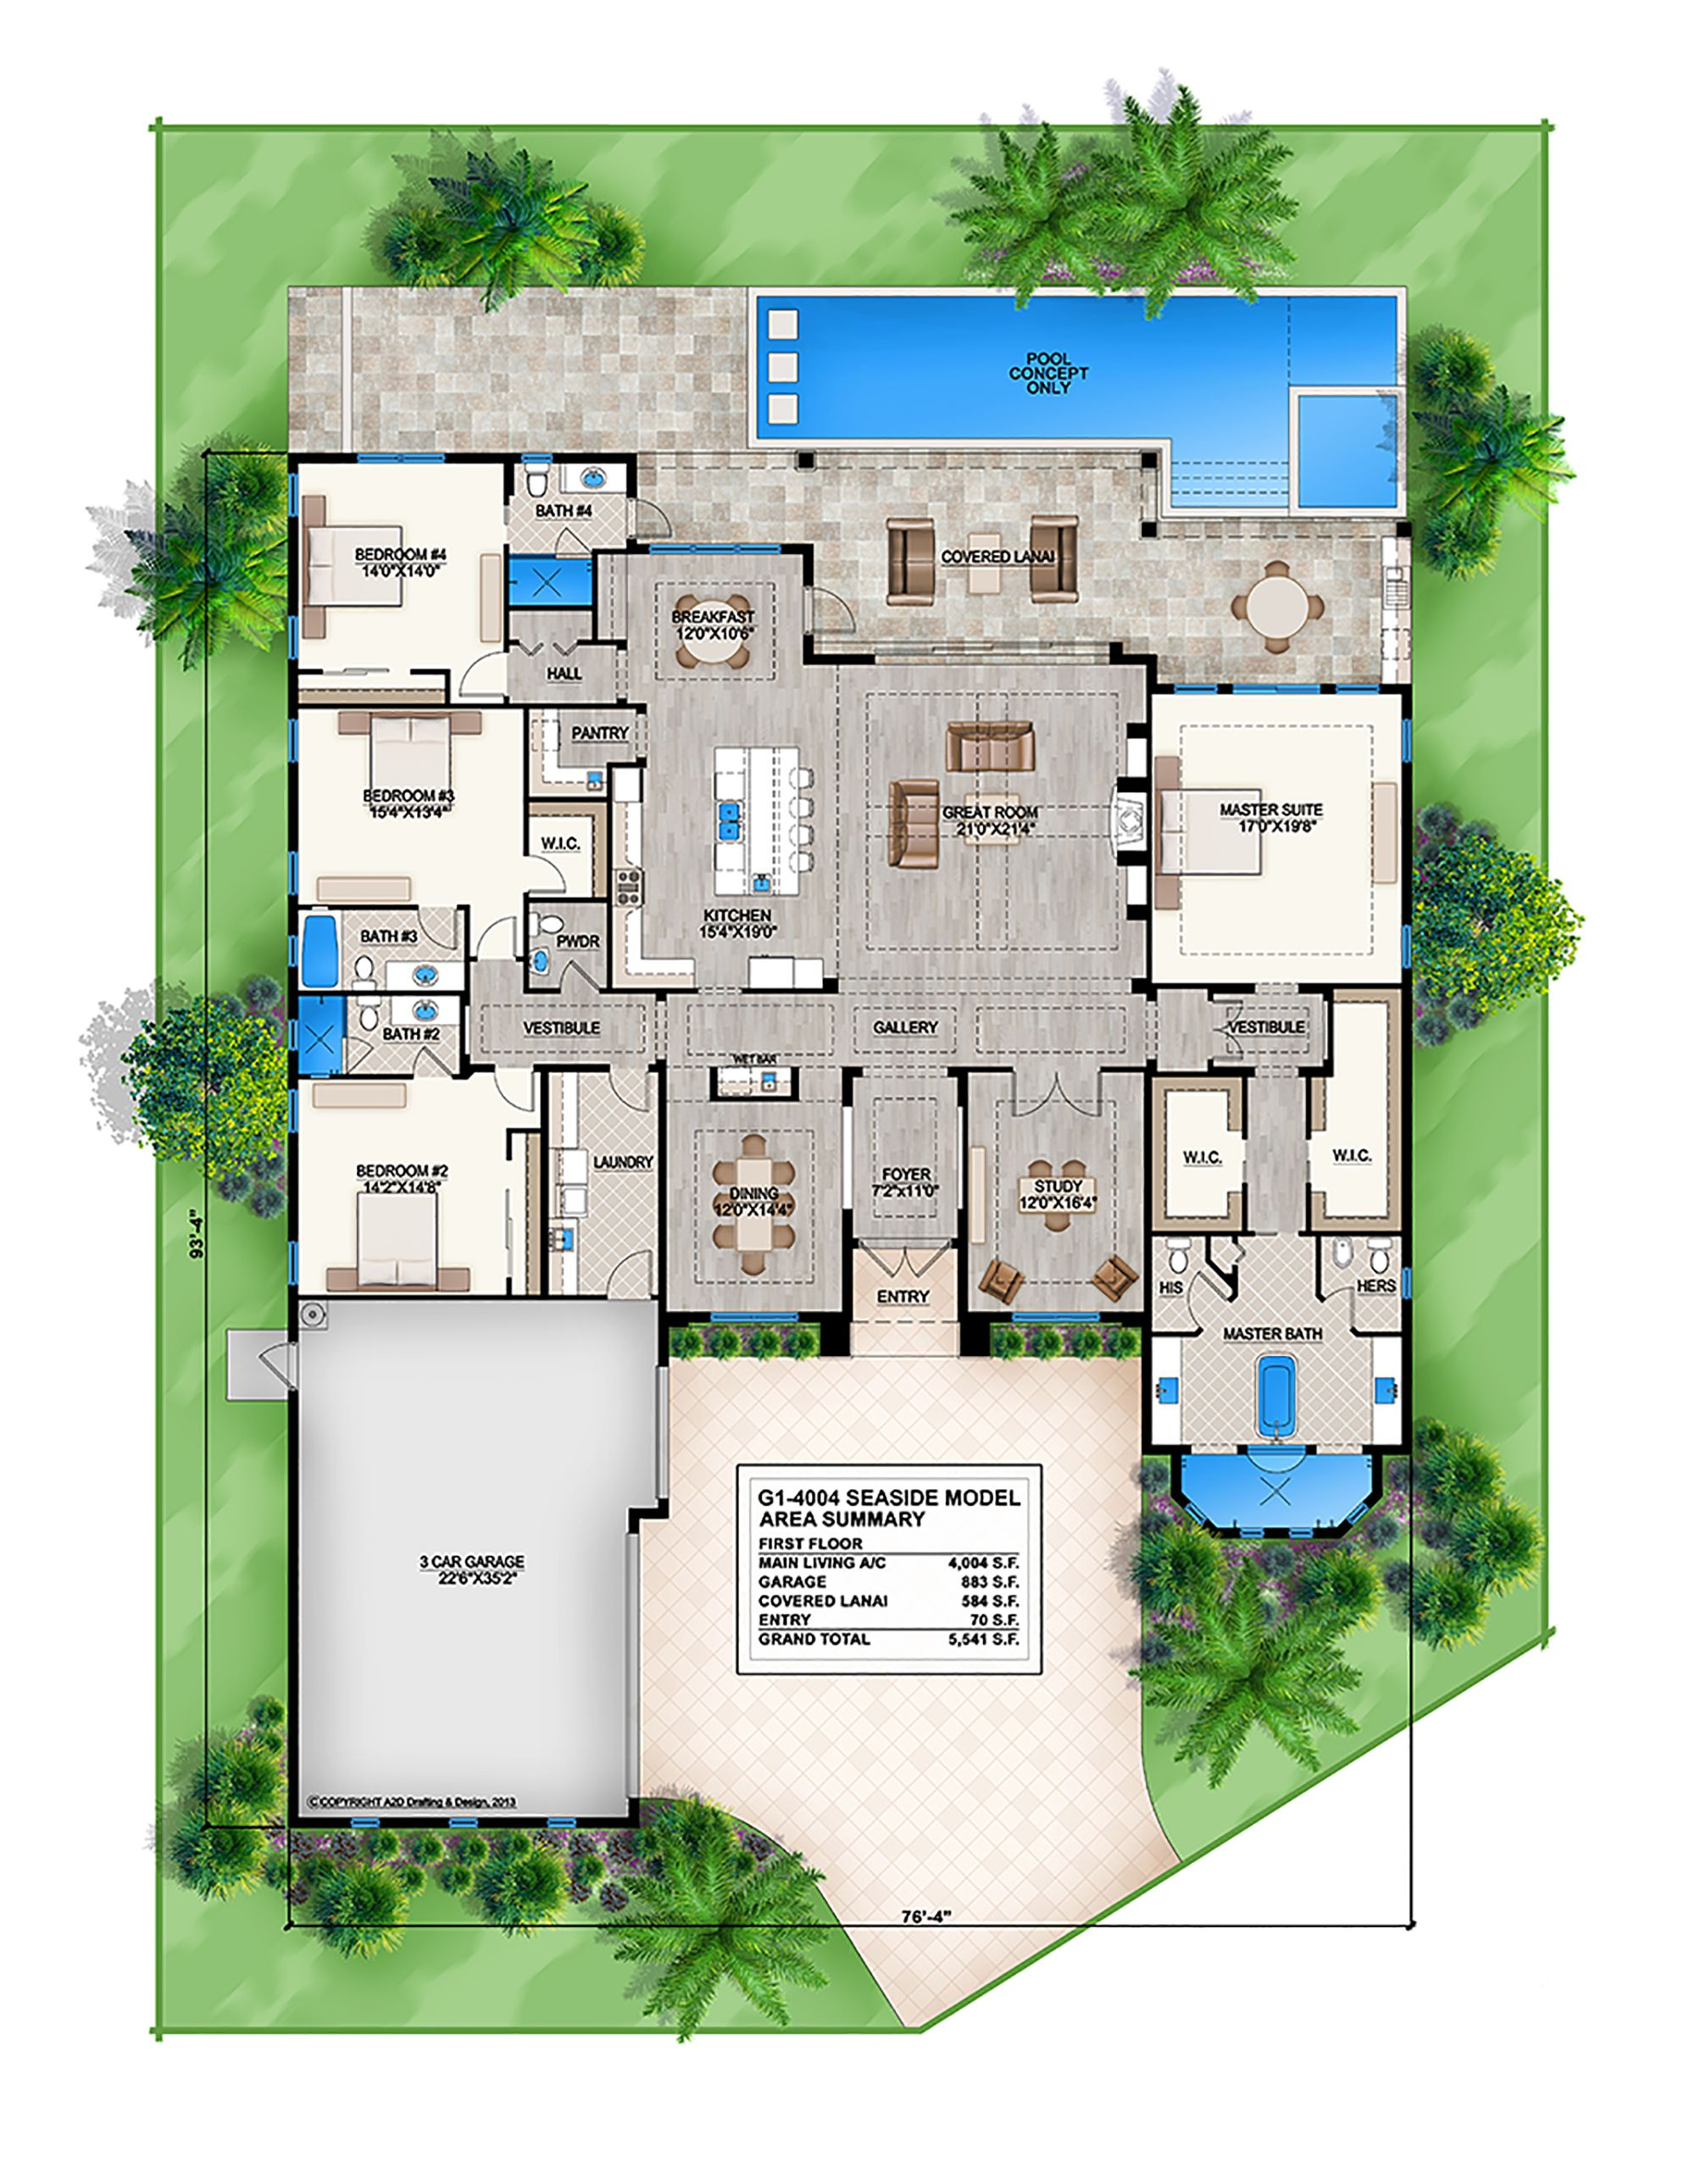 Offered By South Florida Design This 2 Story Coastal Contemporary House Plan Features Great